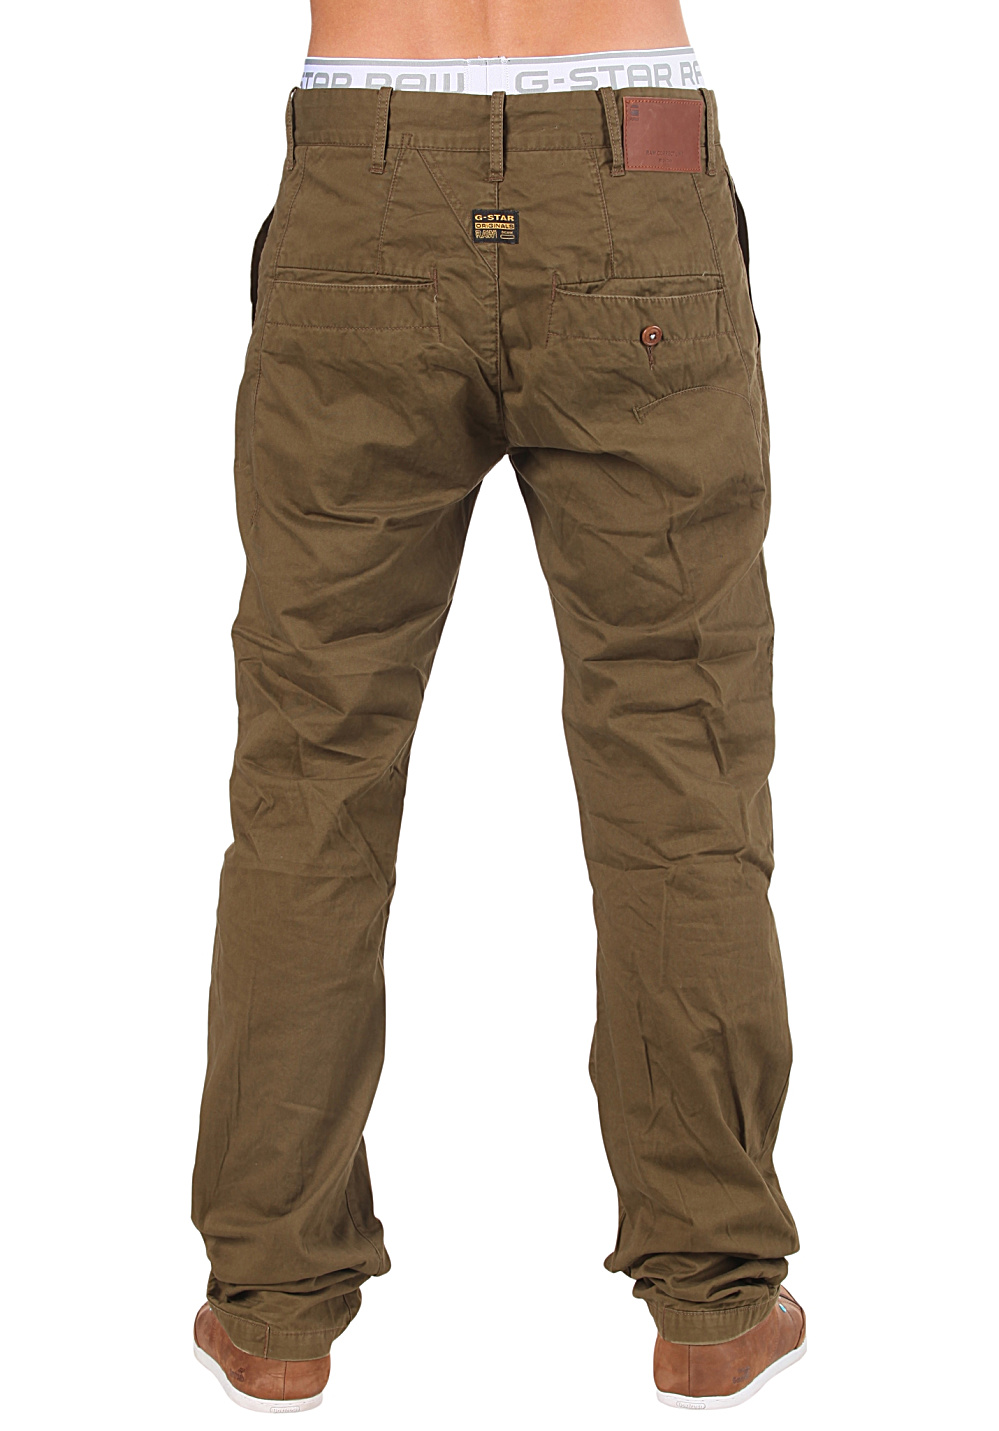 G-STAR CL New Bronson Chino Tapered Pant - Denim Jeans for Men ... 78c1246ad6605